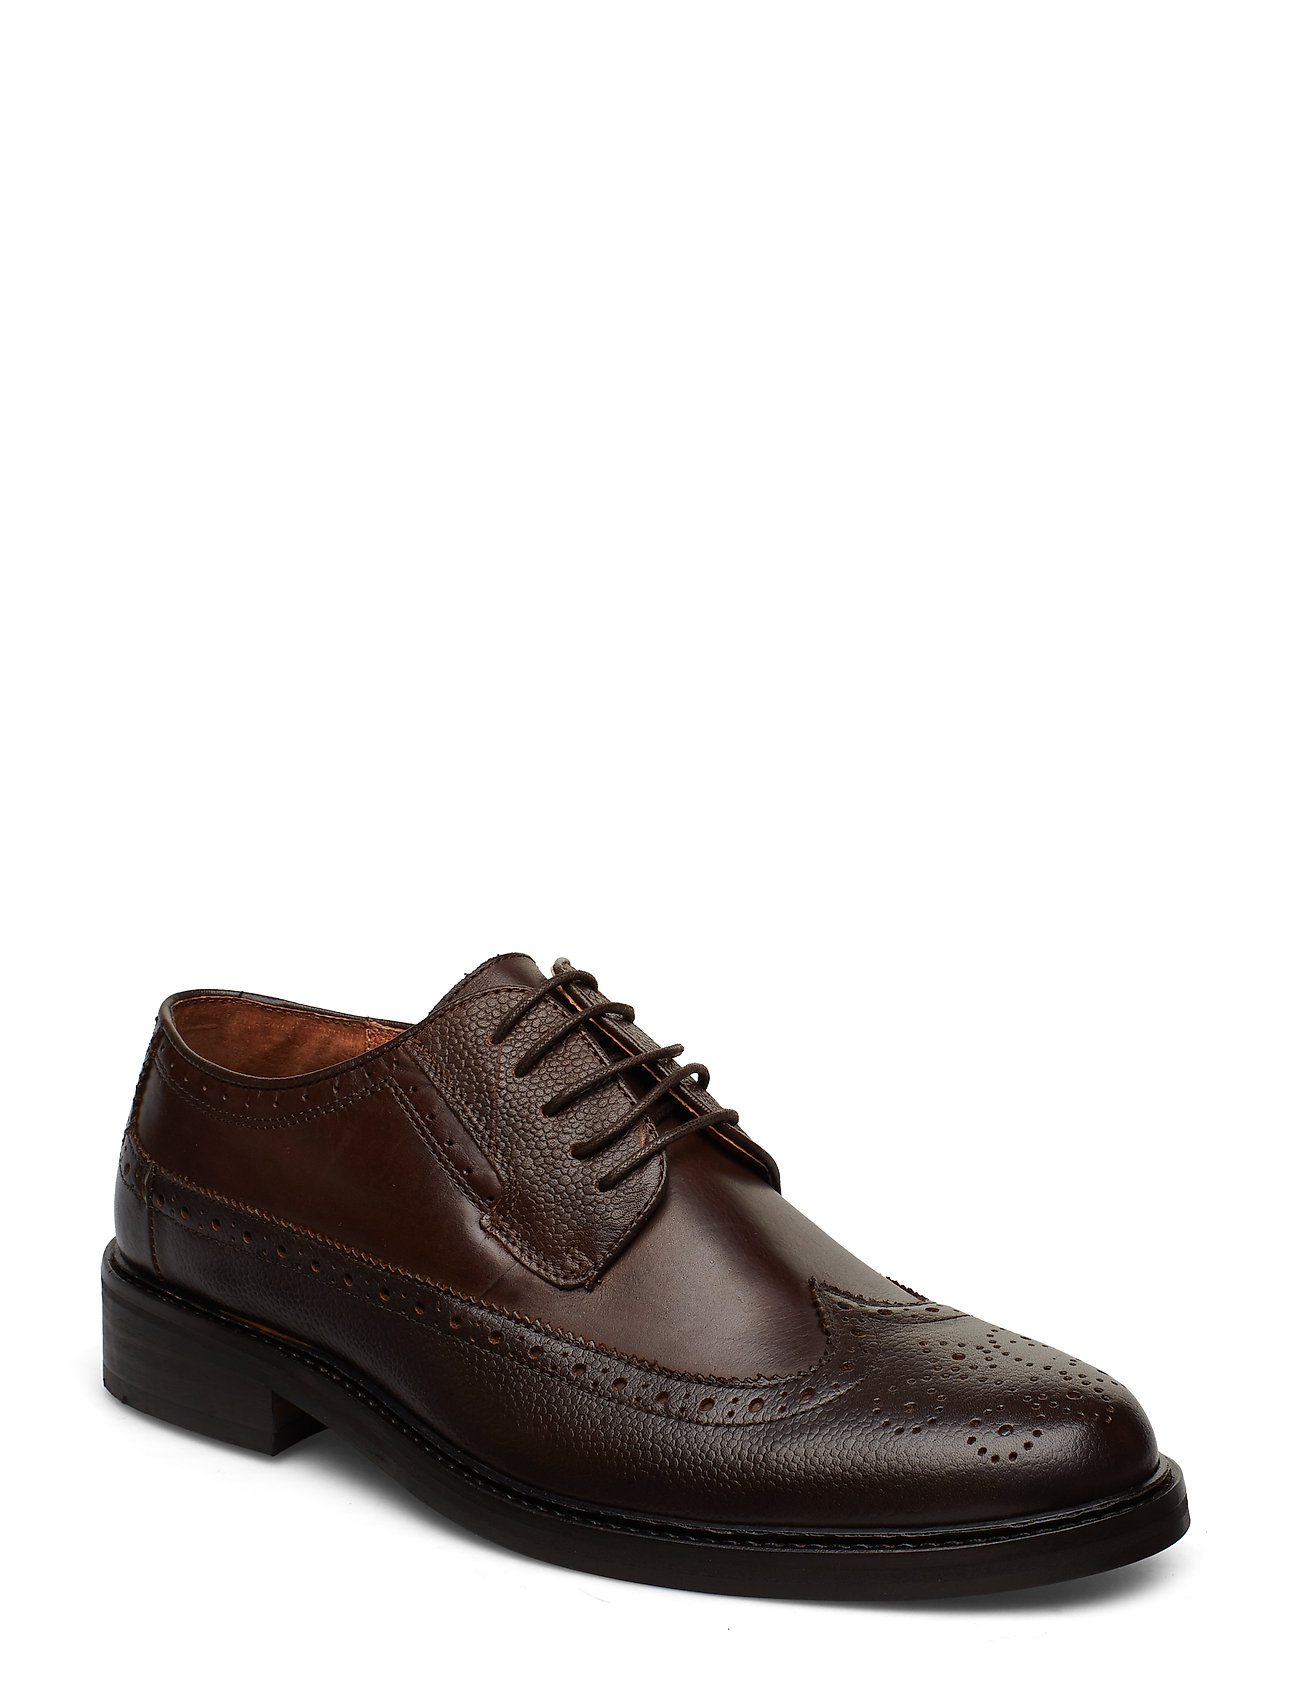 Image of Leather Brogue Oxford Shoe Shoes Business Laced Shoes Brun Lindbergh (3213733913)